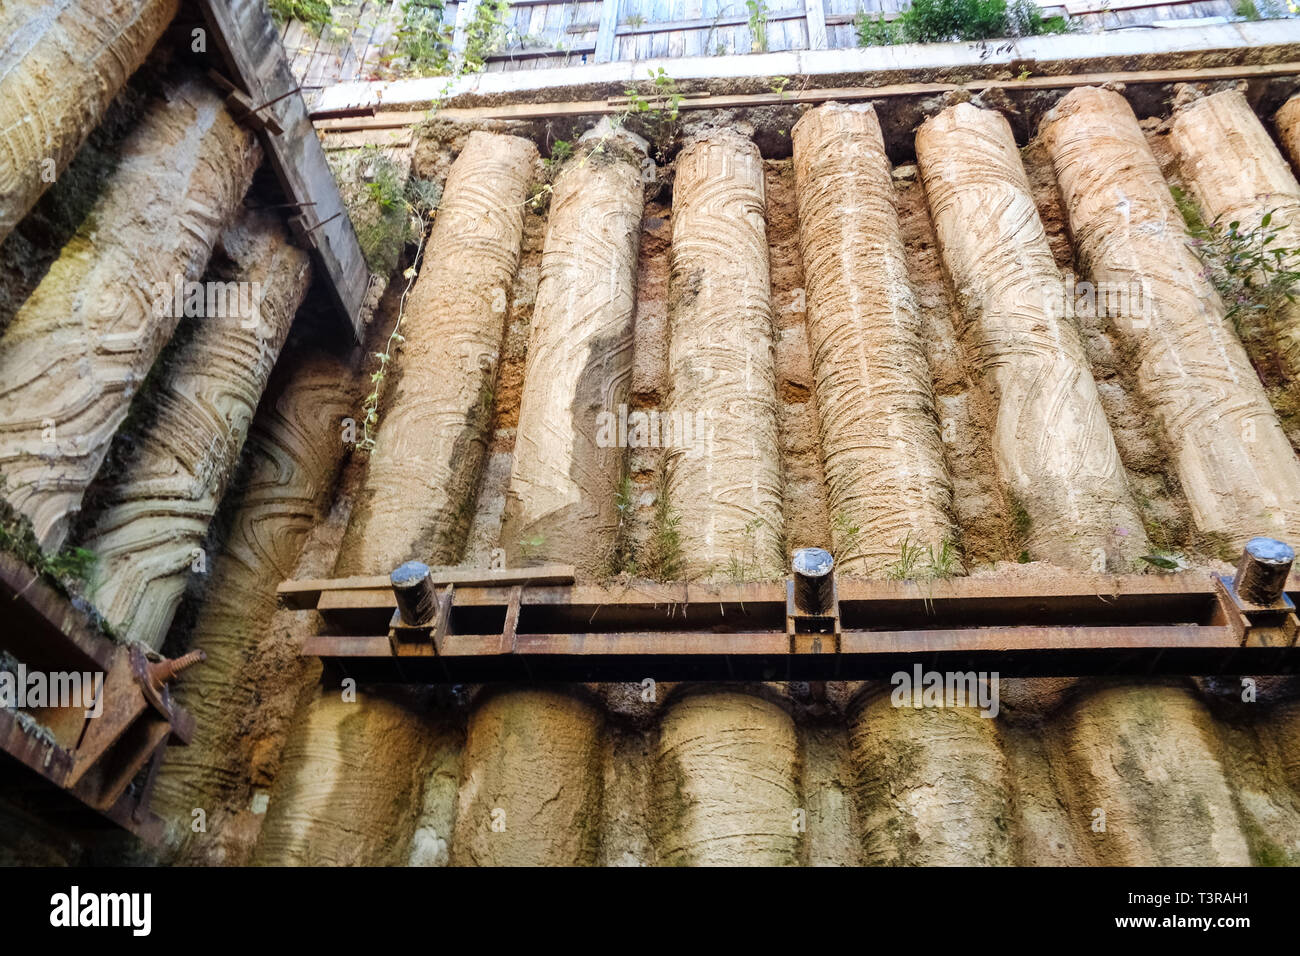 Old piles excavated during the reconstruction of Amursky Boulevard in Khabarovsk. - Stock Image